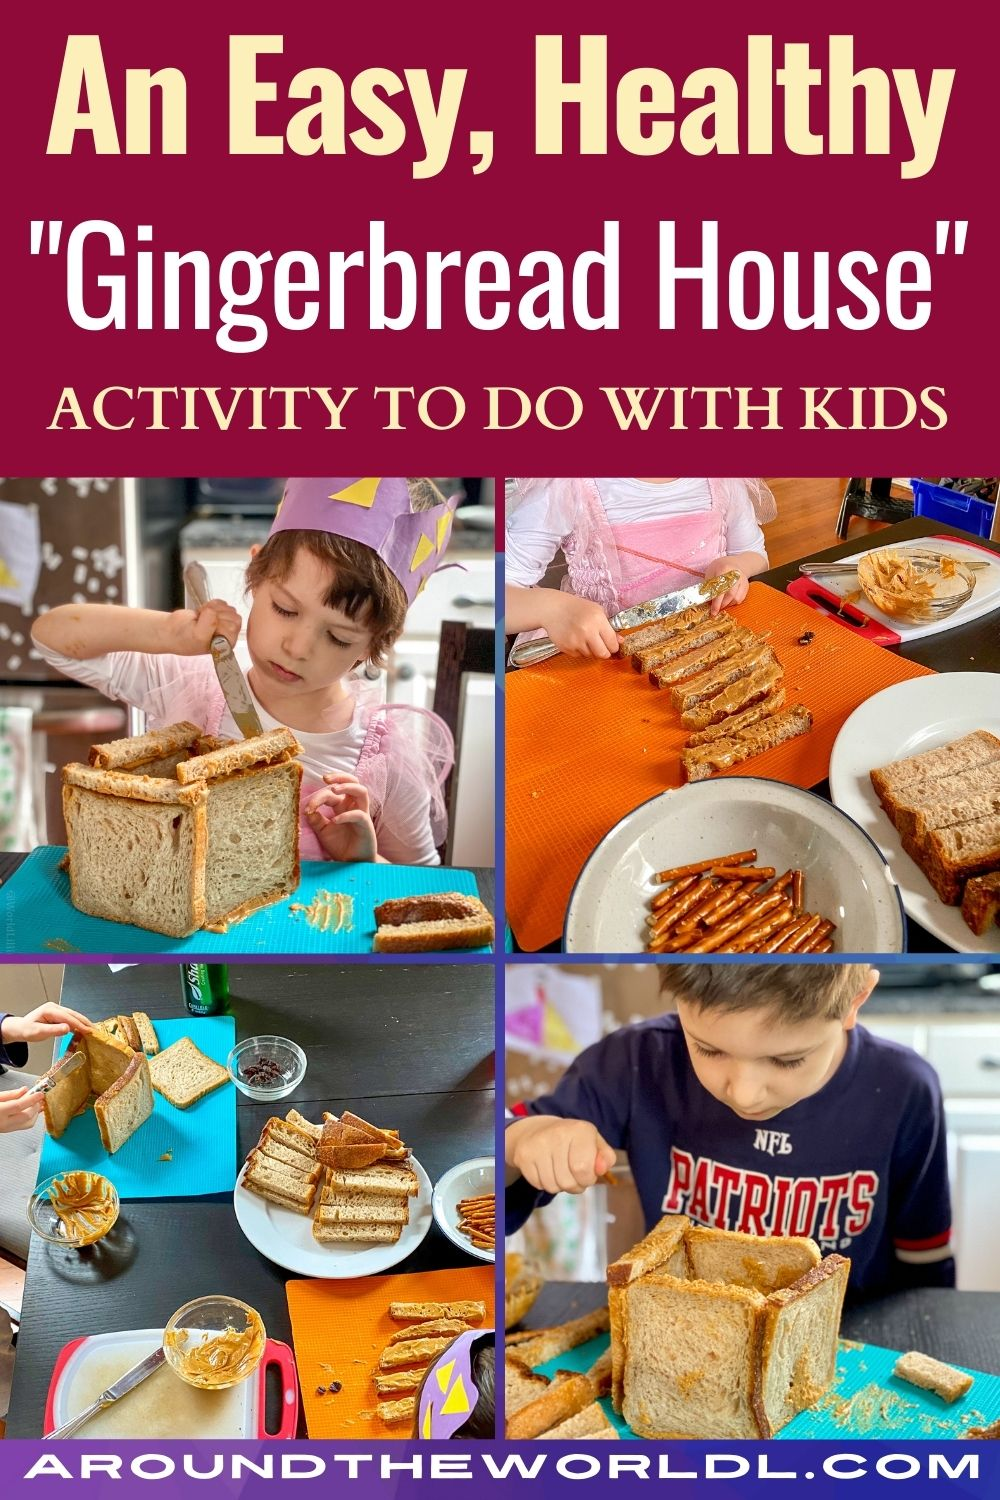 Easy healthy gingerbread house building activity for kids